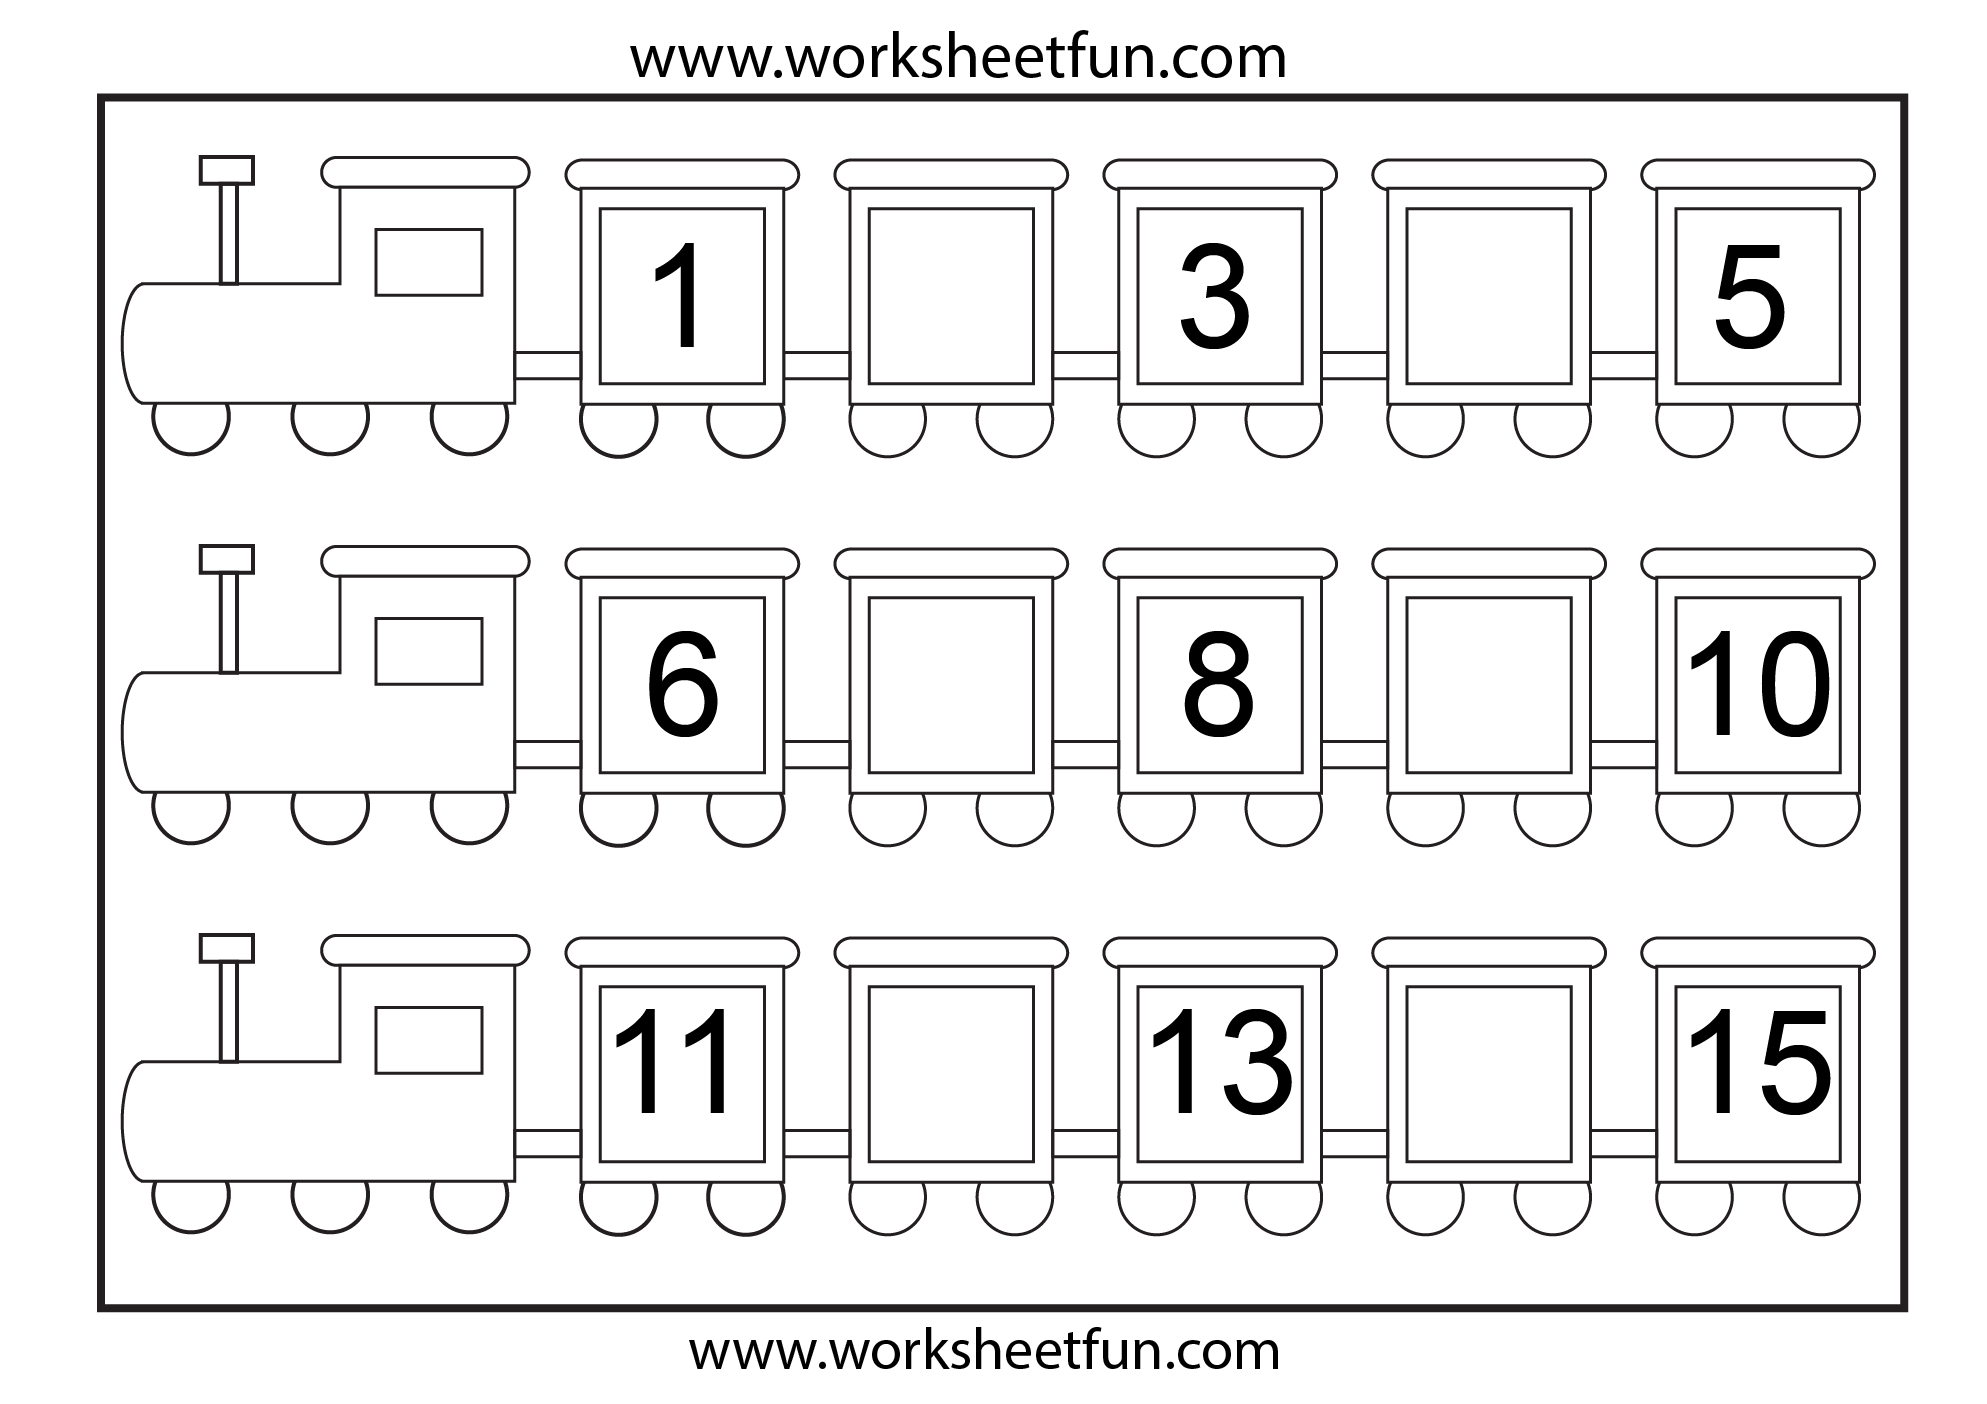 Preschool Worksheets / FREE Printable Worksheets